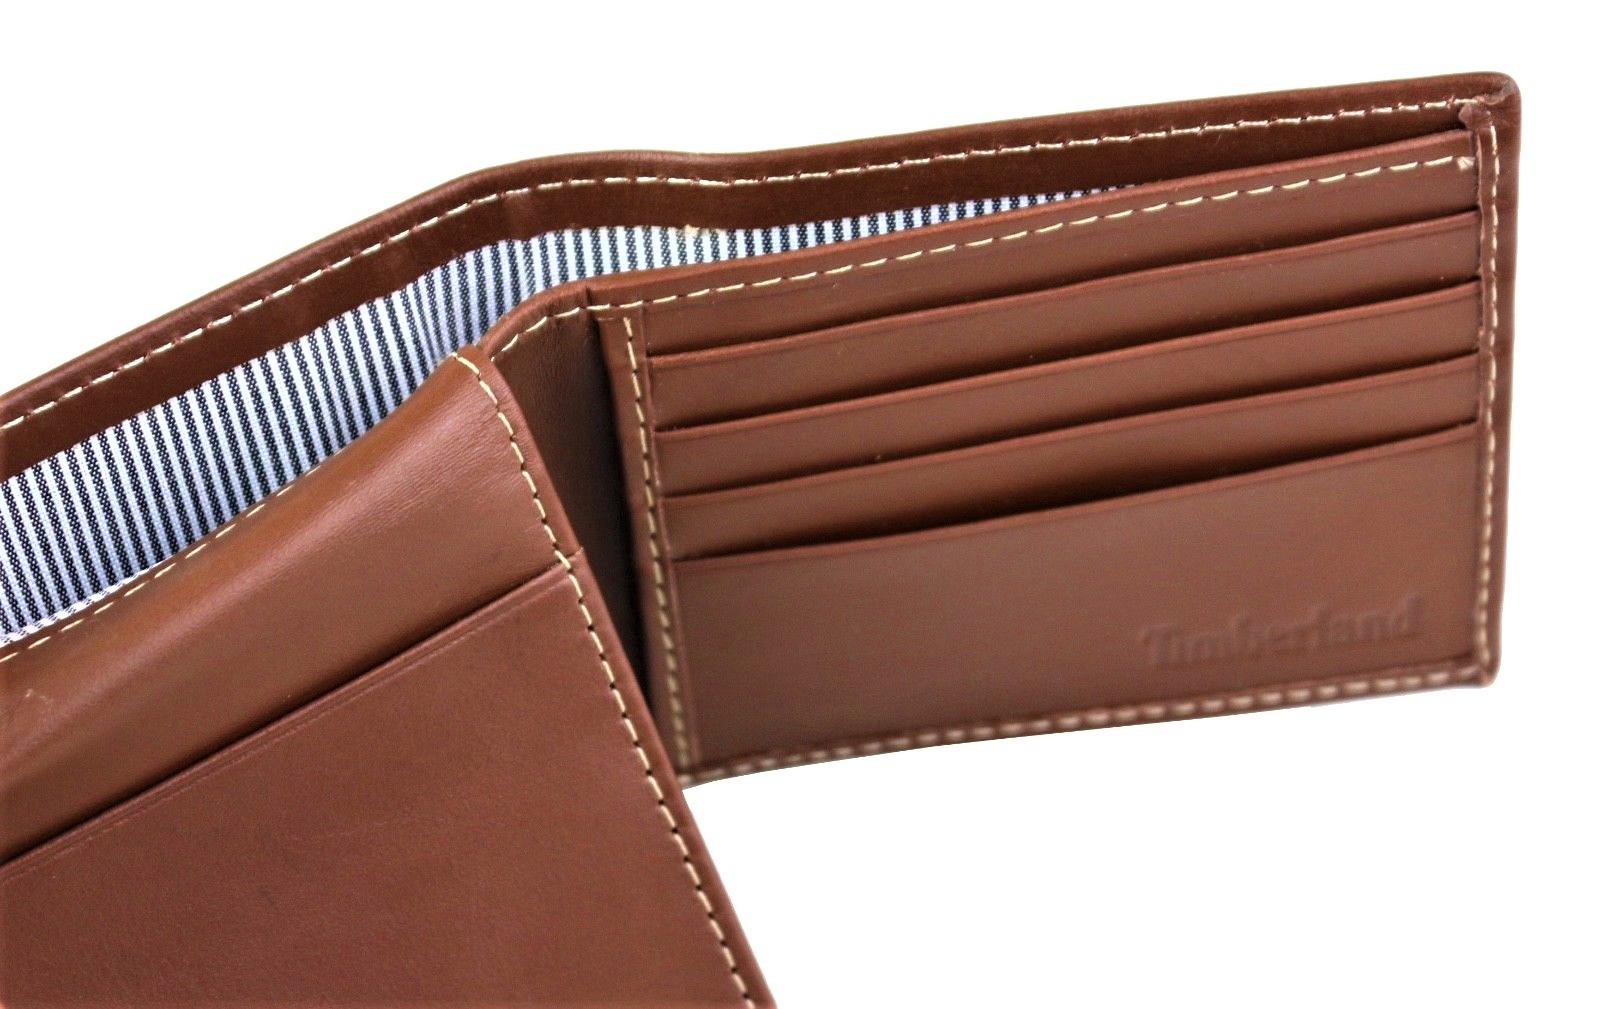 Timberland-Men-039-s-Genuine-Leather-New-Hunter-Passcase-Wallet